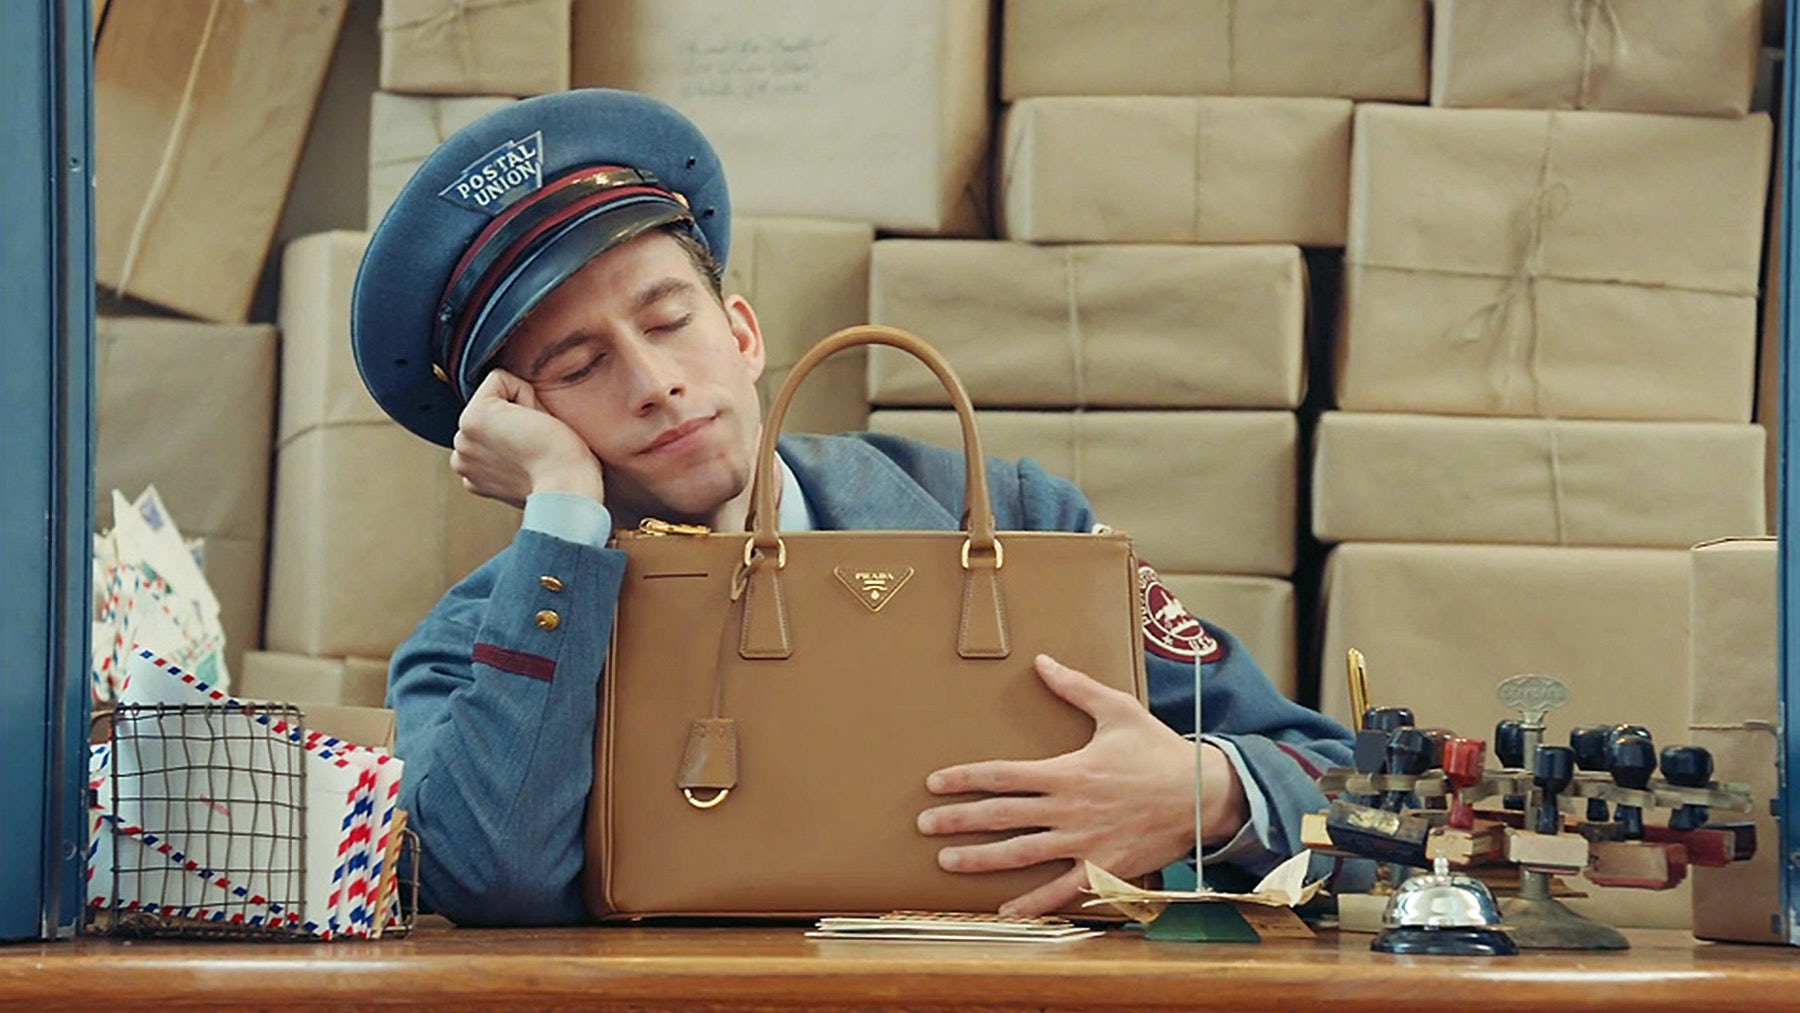 The Postman Dreams | Source: Prada